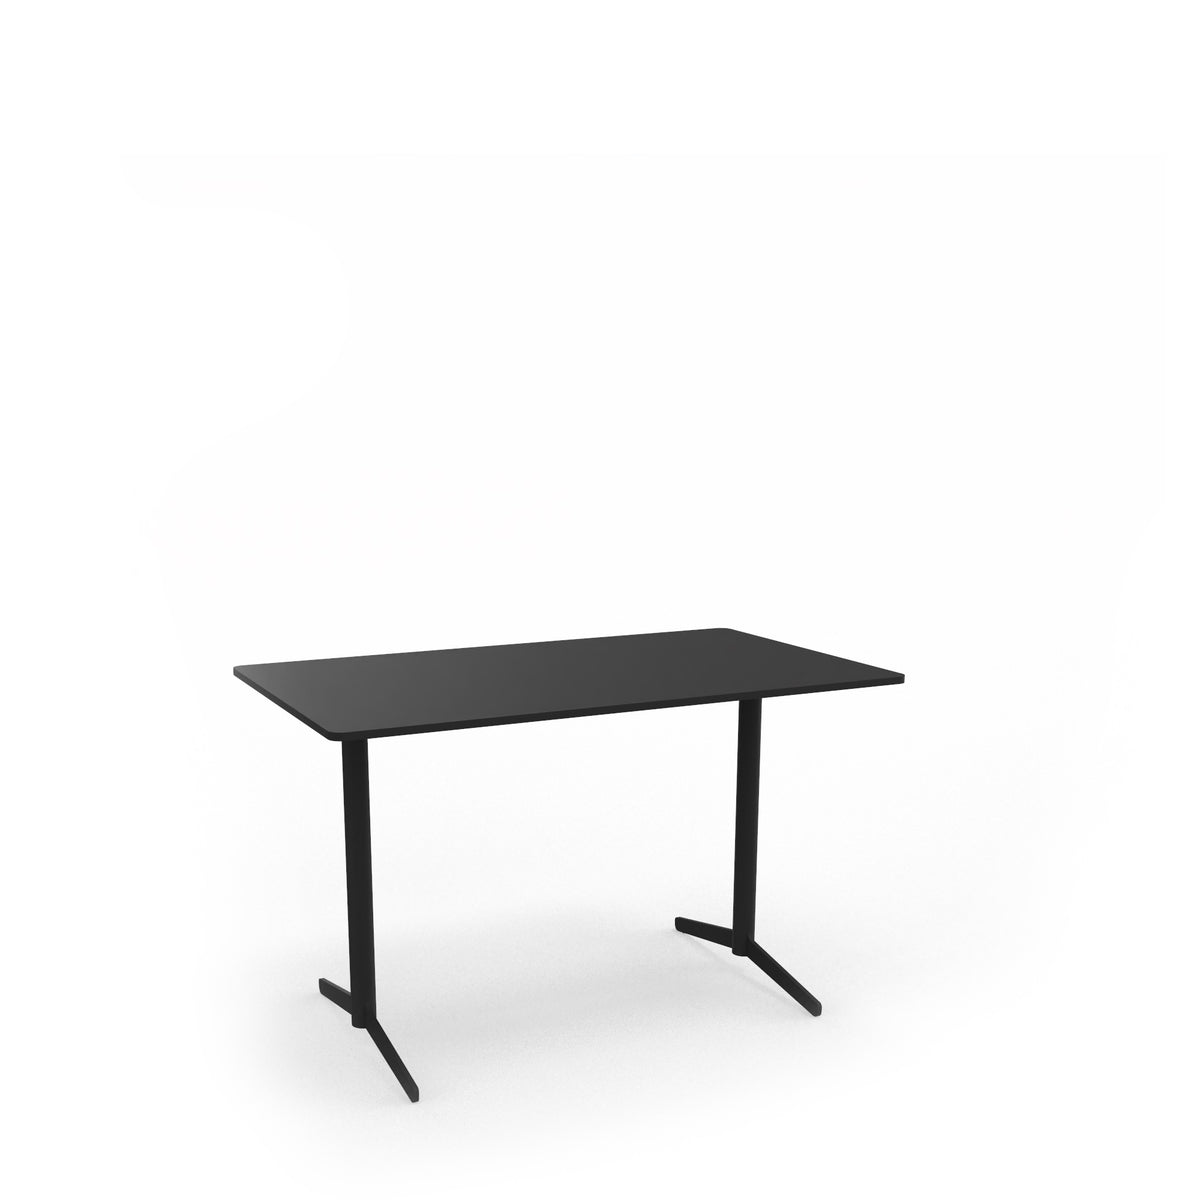 Edsbyn Office Feather Table Desktop Nero Linoleum with Black Base